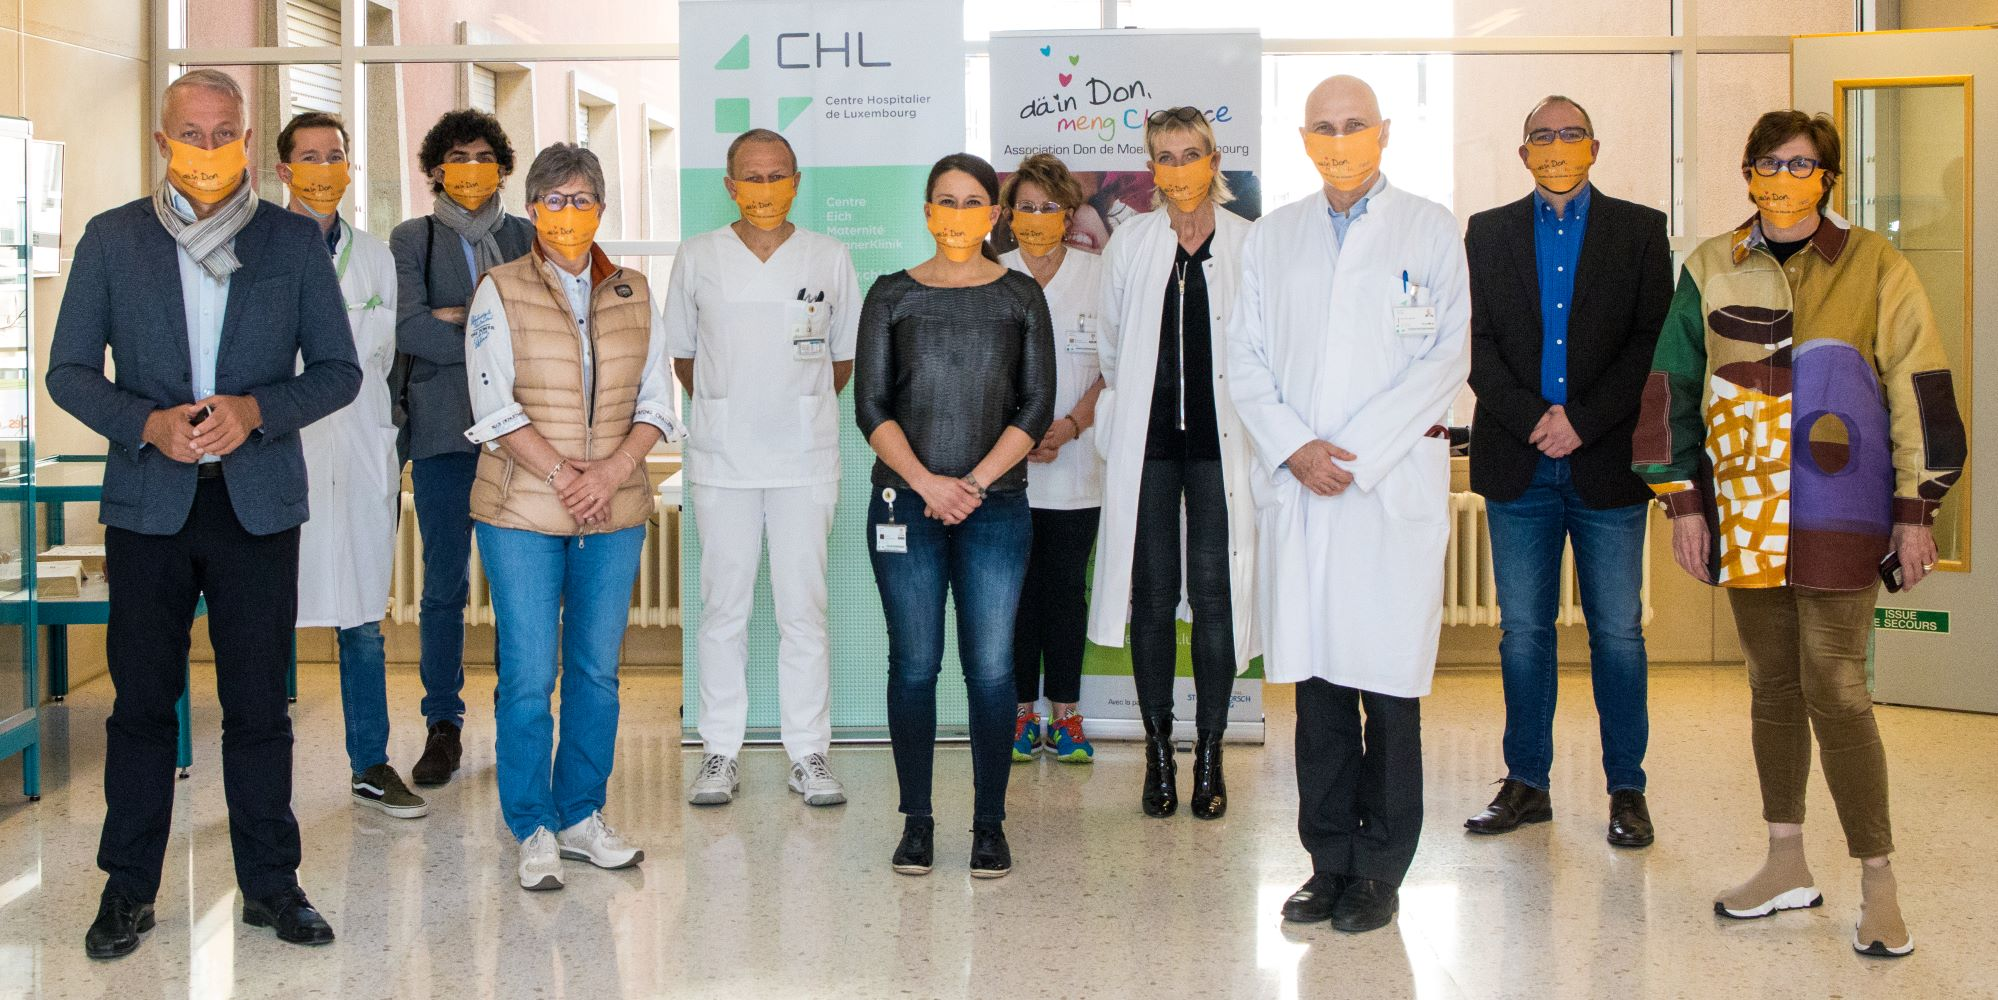 Visite CHL scaled